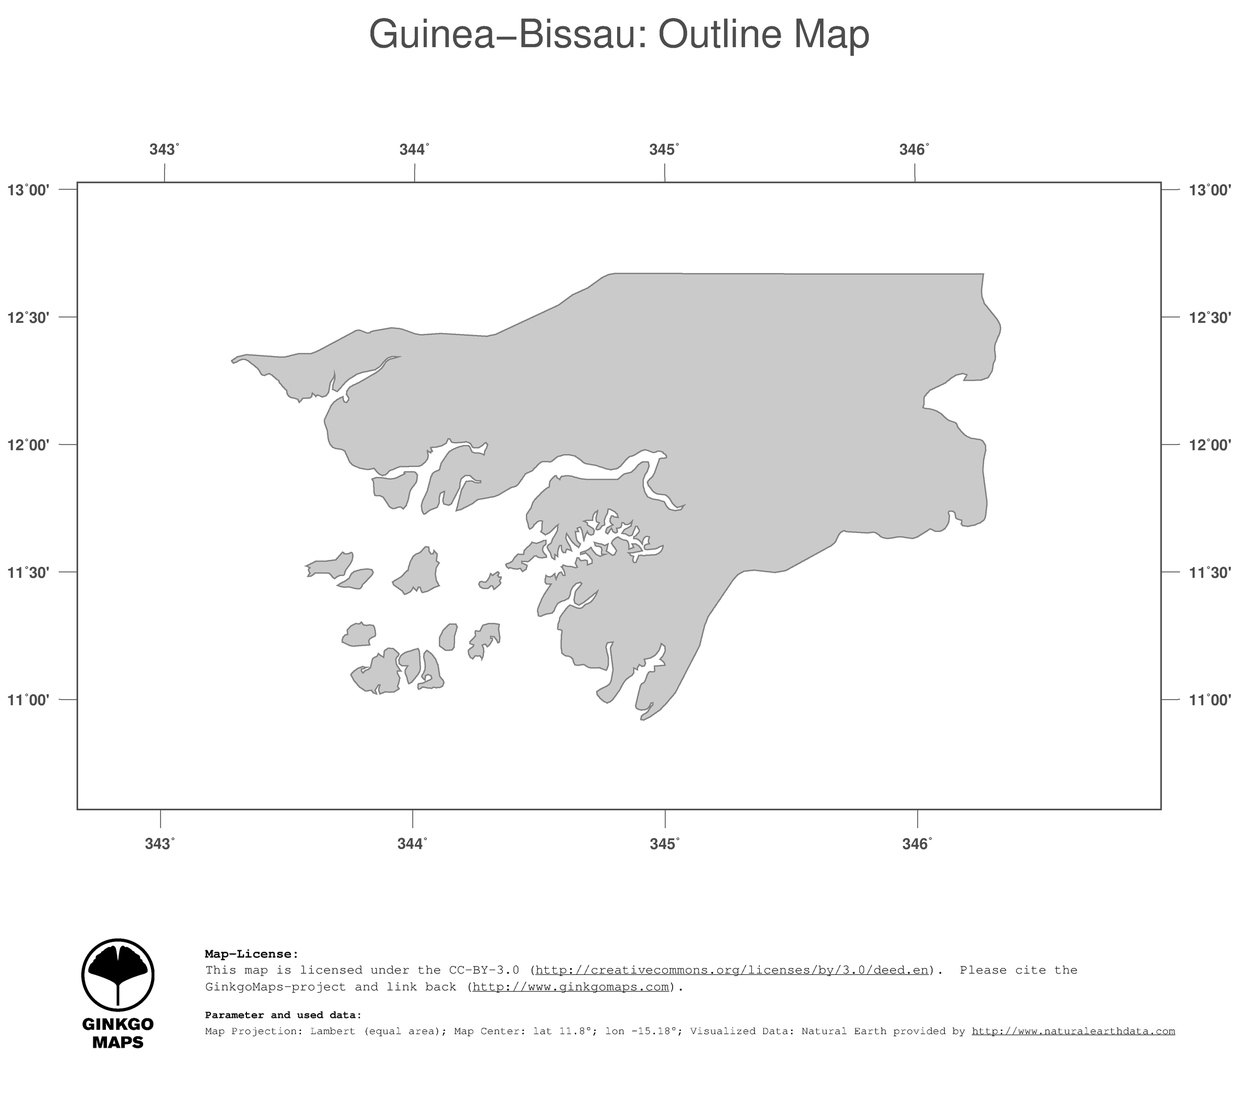 Map GuineaBissau GinkgoMaps Continent Africa Region GuineaBissau - Guinea bissau map